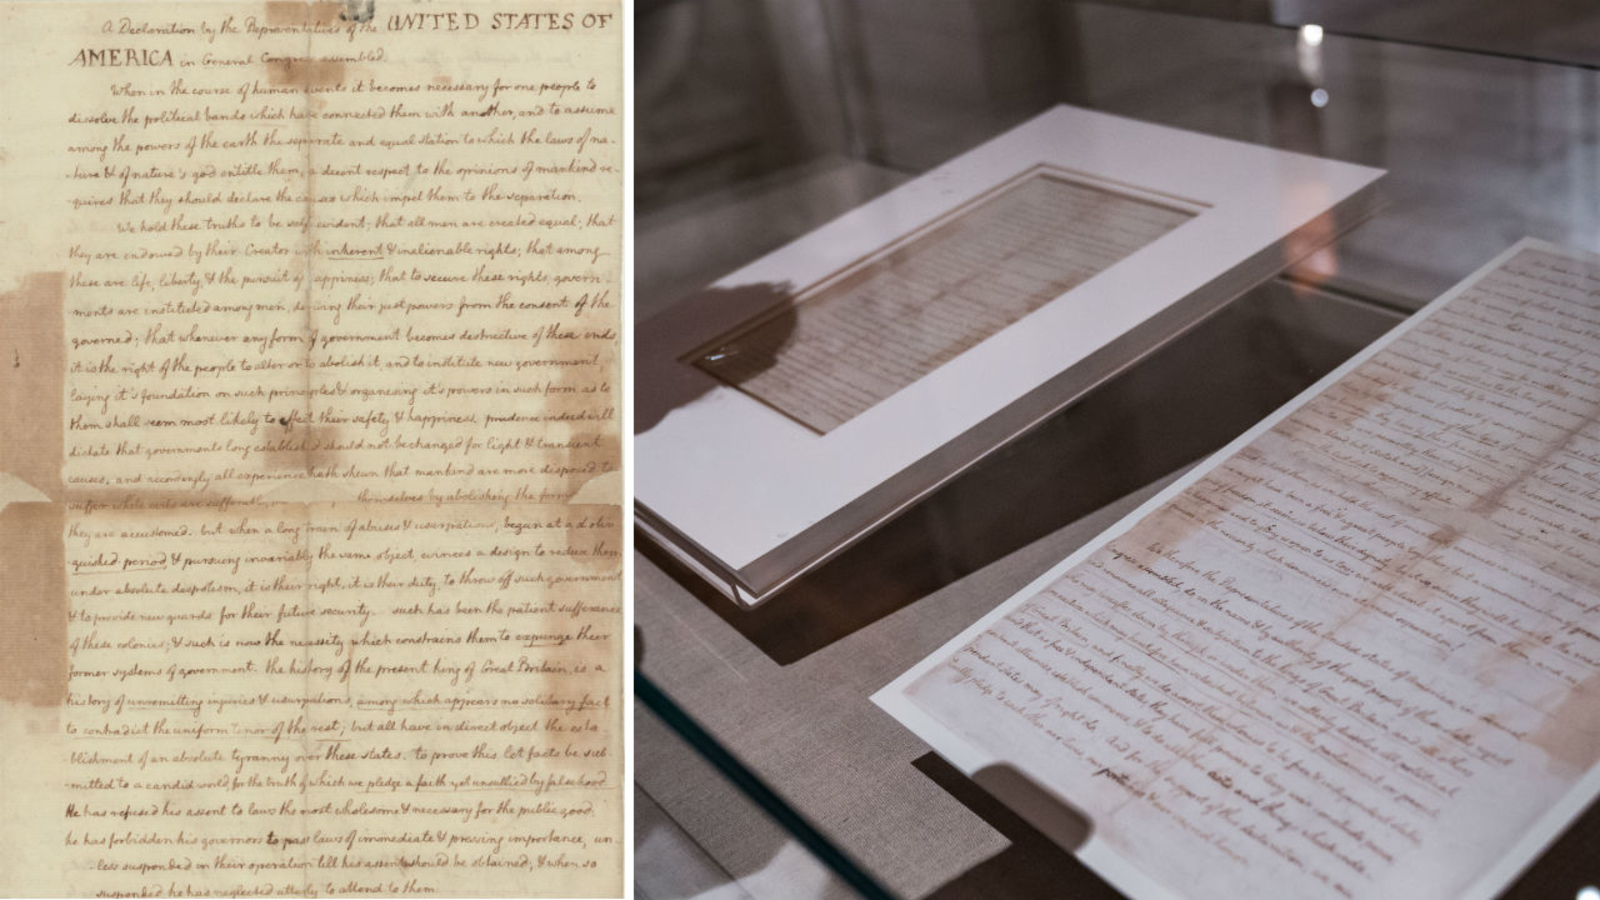 Rare copy of Declaration of Independence on display in New York City